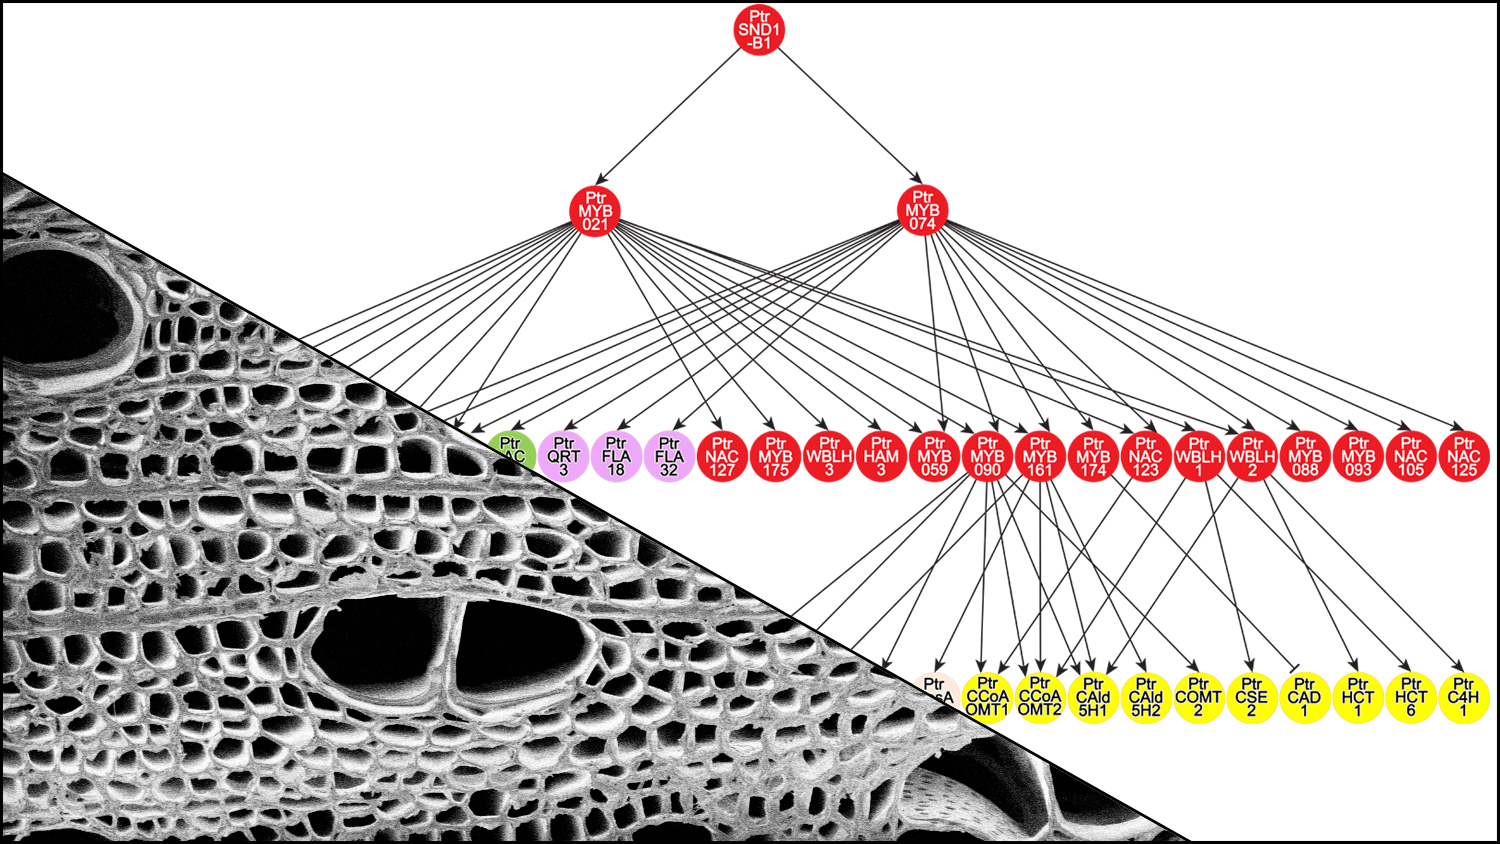 Diagram of transcriptional regulatory network and scanning electron micrograph of a poplar stem cross-section